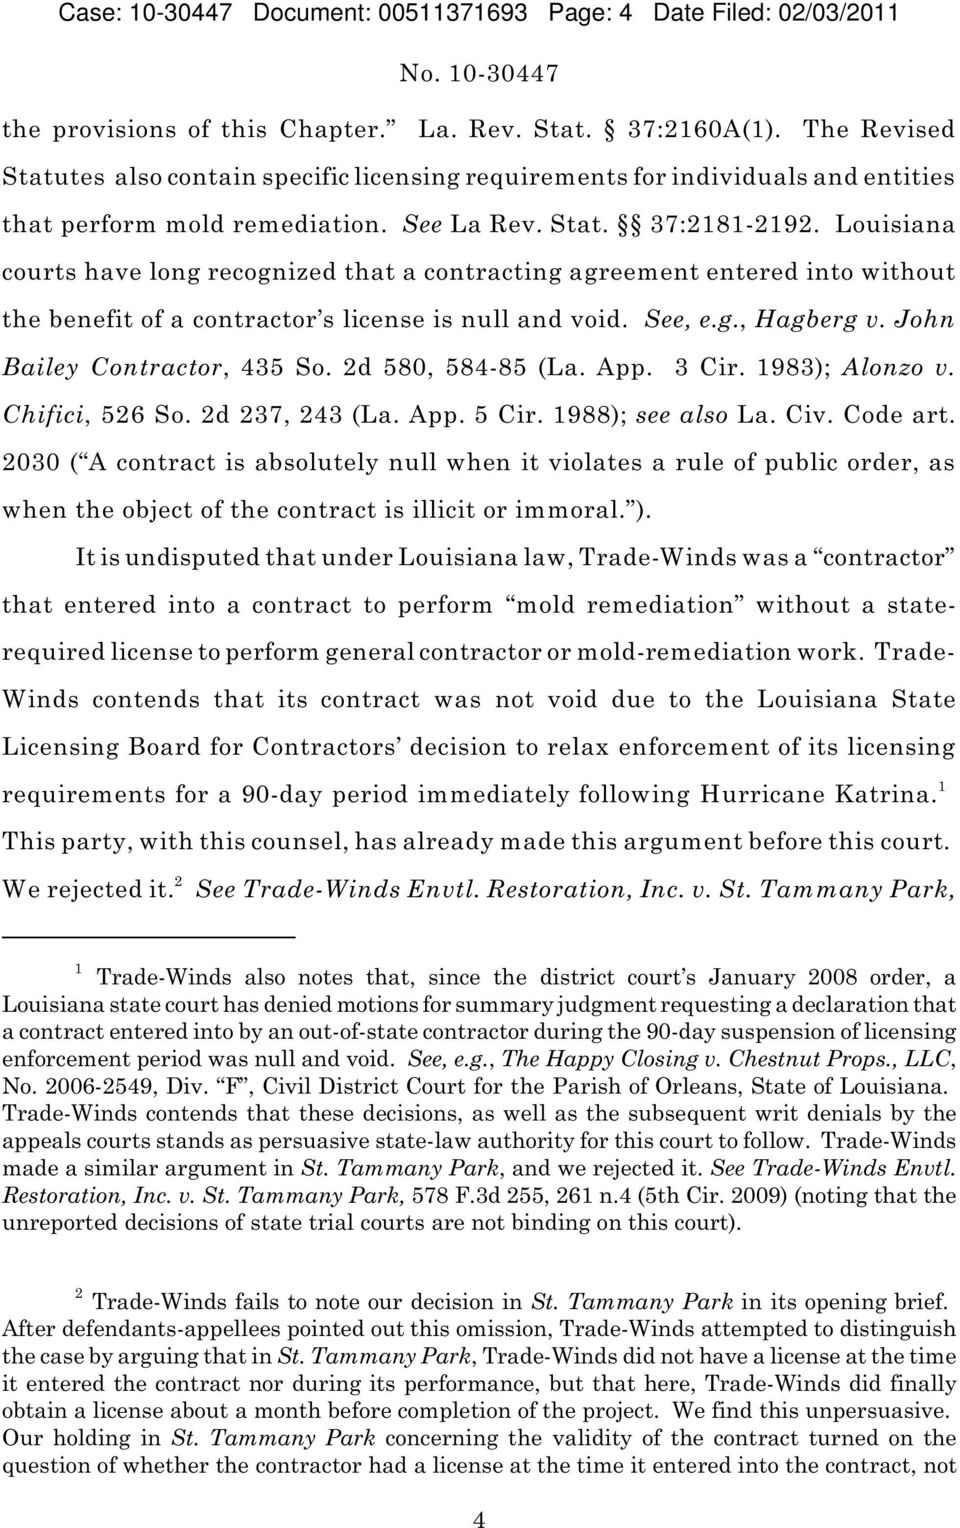 Louisiana courts have long recognized that a contracting agreement entered into without the benefit of a contractor s license is null and void. See, e.g., Hagberg v. John Bailey Contractor, 435 So.